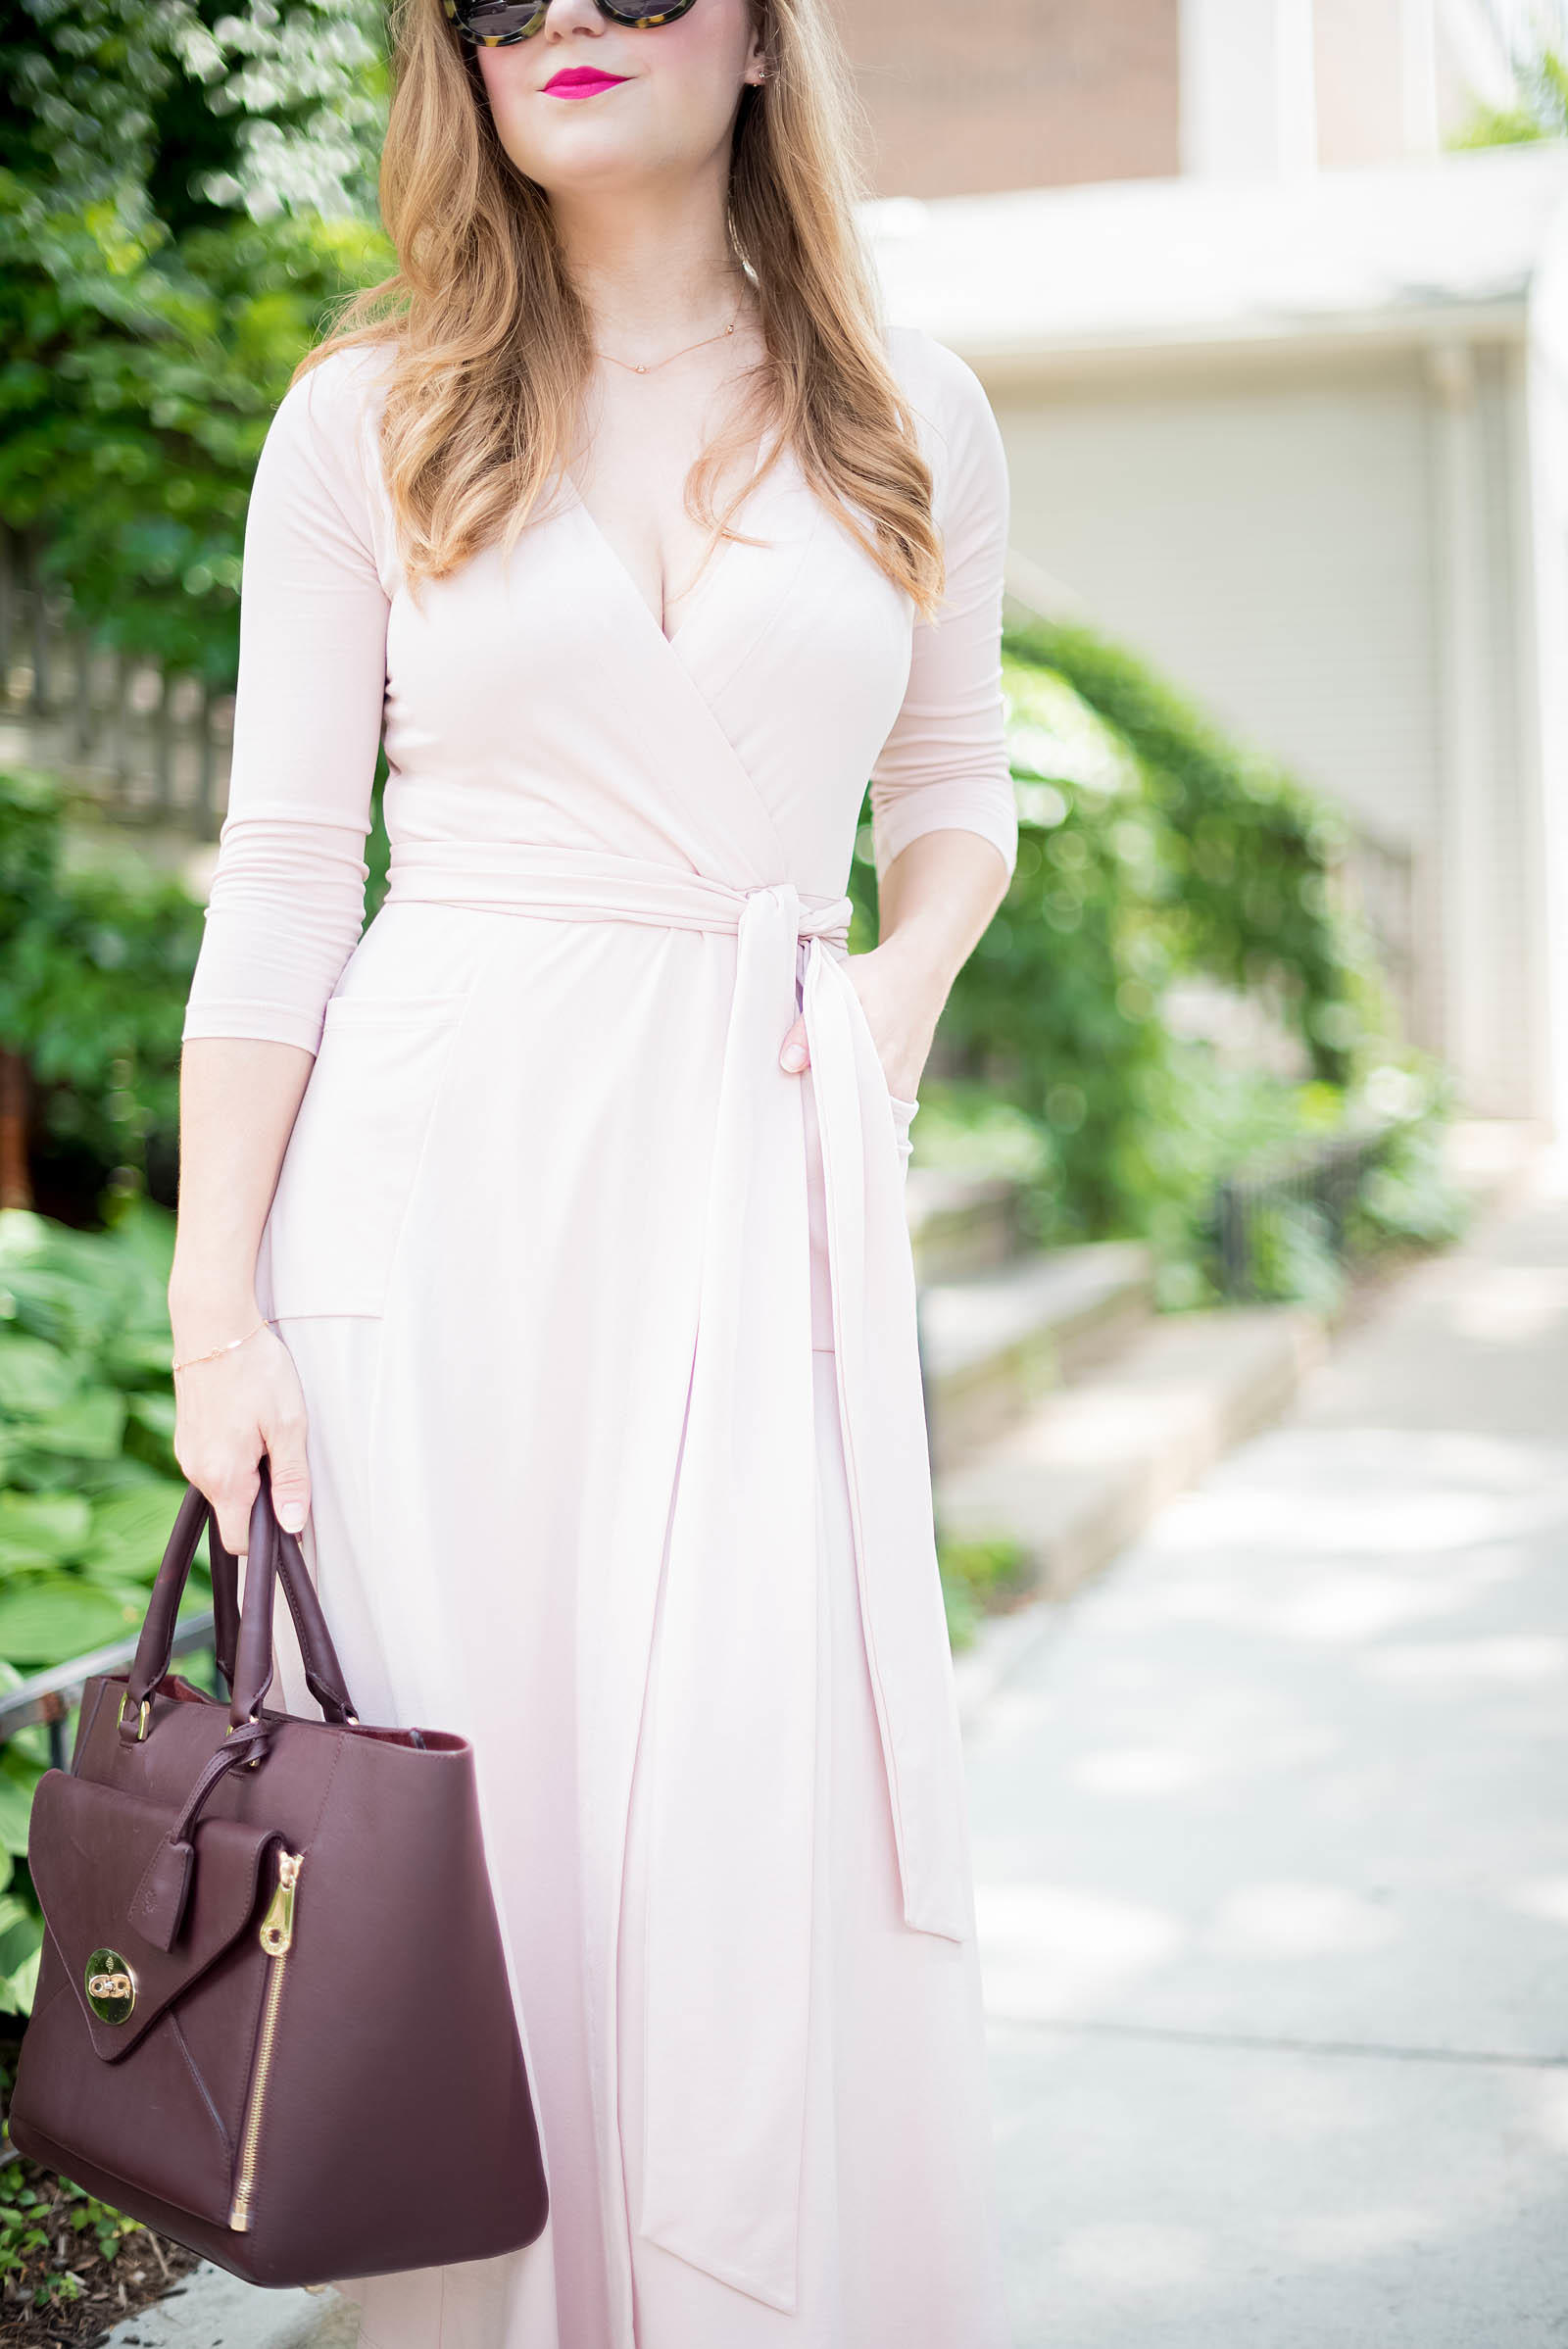 Blush Oxblood Midi Dress Outfit Mulberry Asos Karen Walker